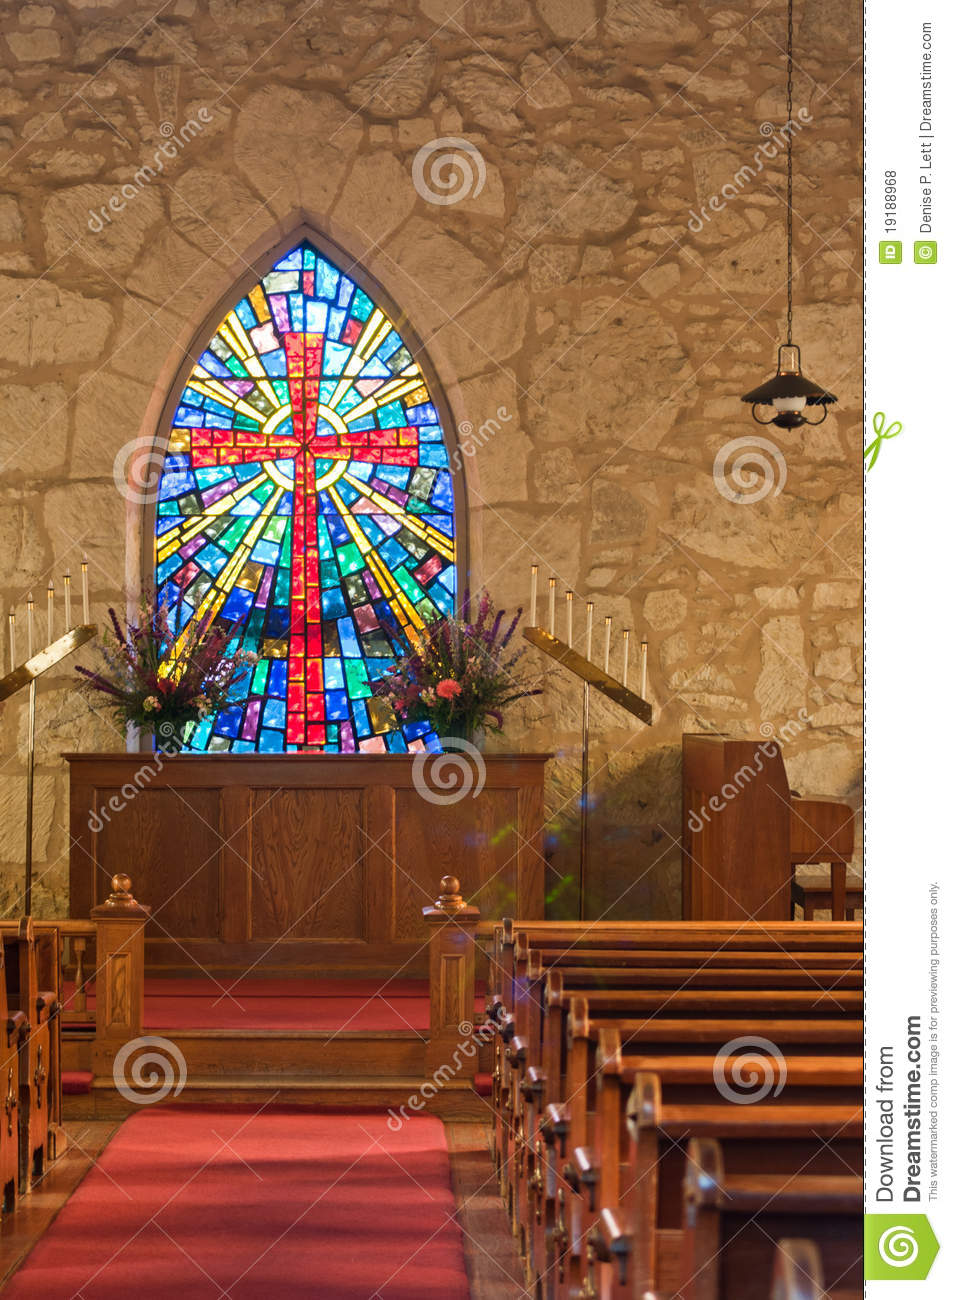 Church Interior with Stained Glass WIndow